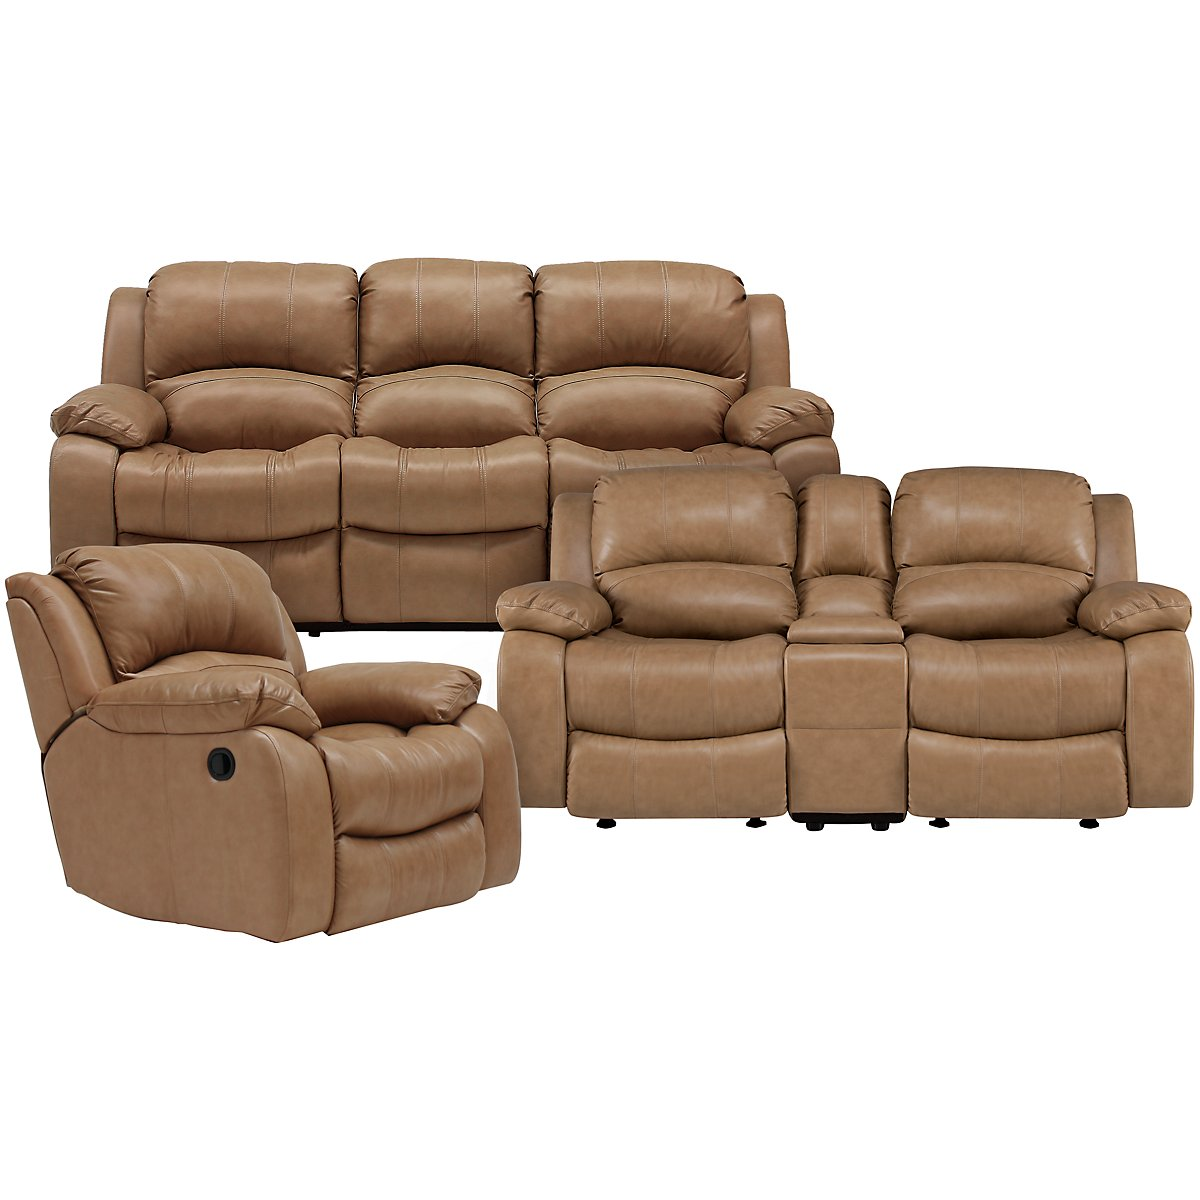 Tyler3 Dark Taupe Leather & Vinyl Power Reclining Living Room